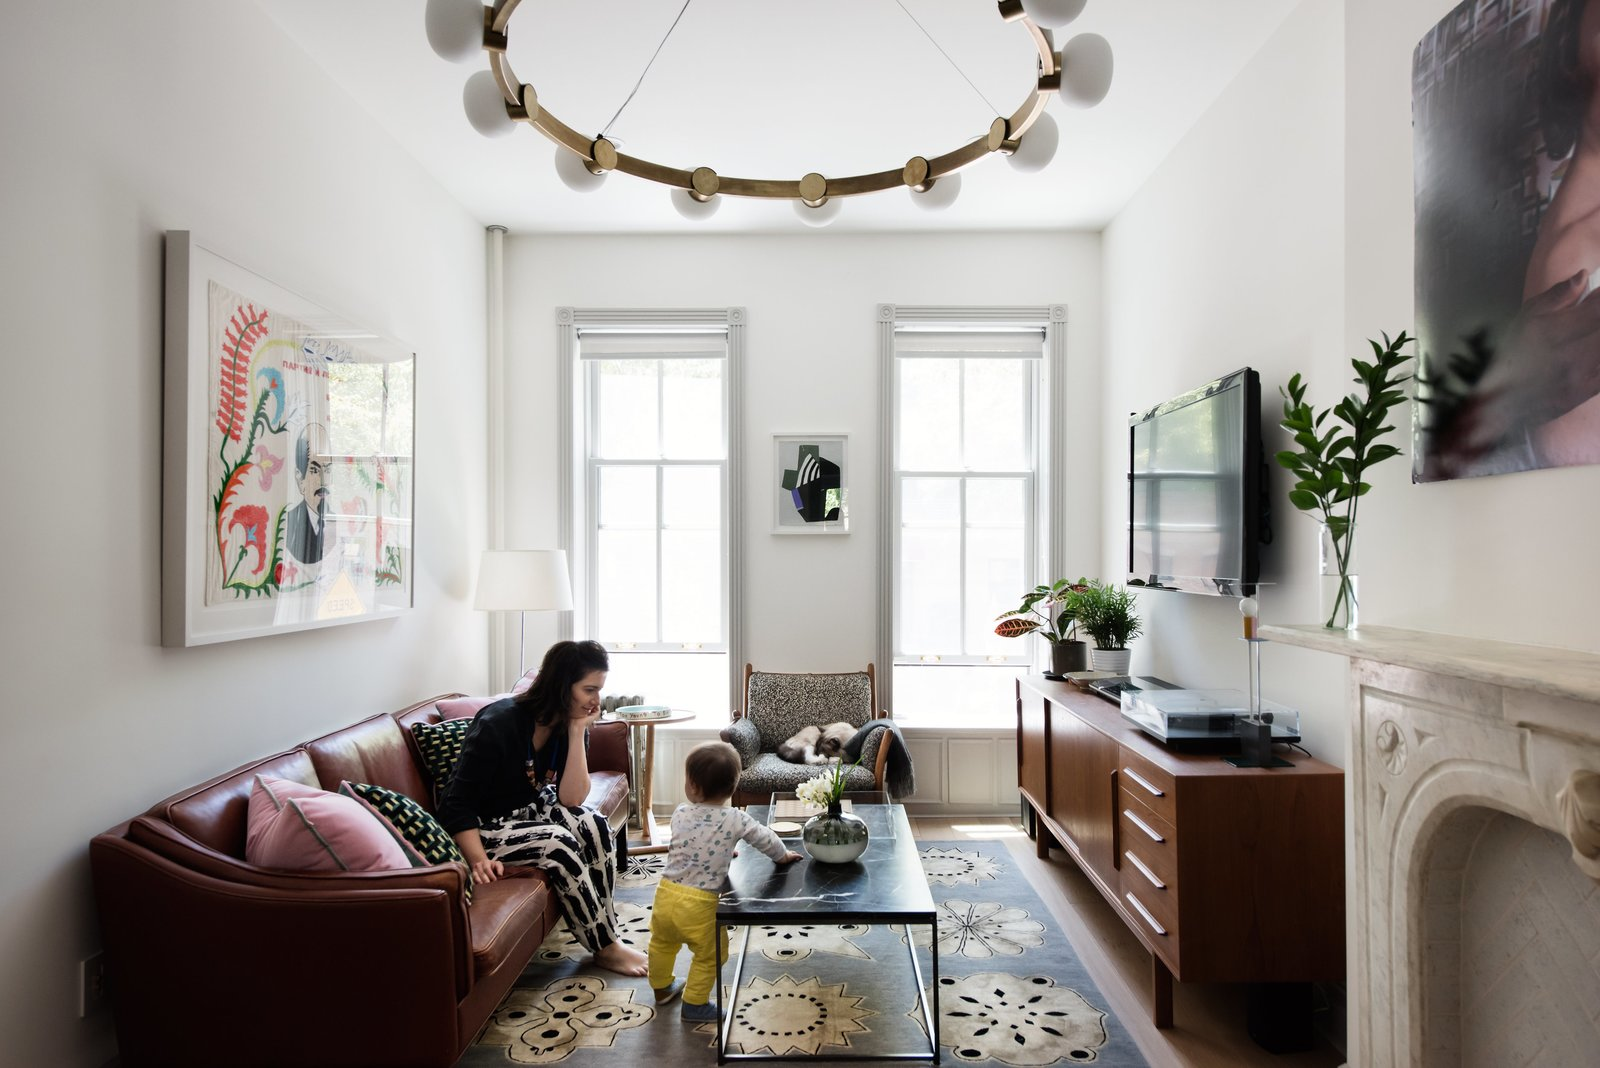 Living Room, Sofa, Pendant Lighting, Ceiling Lighting, Table Lighting, Console Tables, End Tables, Coffee Tables, Lamps, Rug Floor, and Light Hardwood Floor Interior designer Merrill Lyons plays with her son in the Brooklyn home she renovated with her husband, Charles Brill, a lighting designer and cofounder of New York–based company Rich Brilliant Willing (RBW). The couple's design sensibility is marked by a warm mix of historic periods and styles, punctuated with pieces by RBW, including the circular brass Cinema chandelier that hangs in the living room. The leather sofa and teak  credenza are vintage; the 1960s rosewood Genius armchair by Danish designer Illum Wikkelso was reupholstered with fabric sourced from an outlet.  Photo 2 of 14 in Modern Becomes Eclectic in This Renovated Brooklyn Townhouse